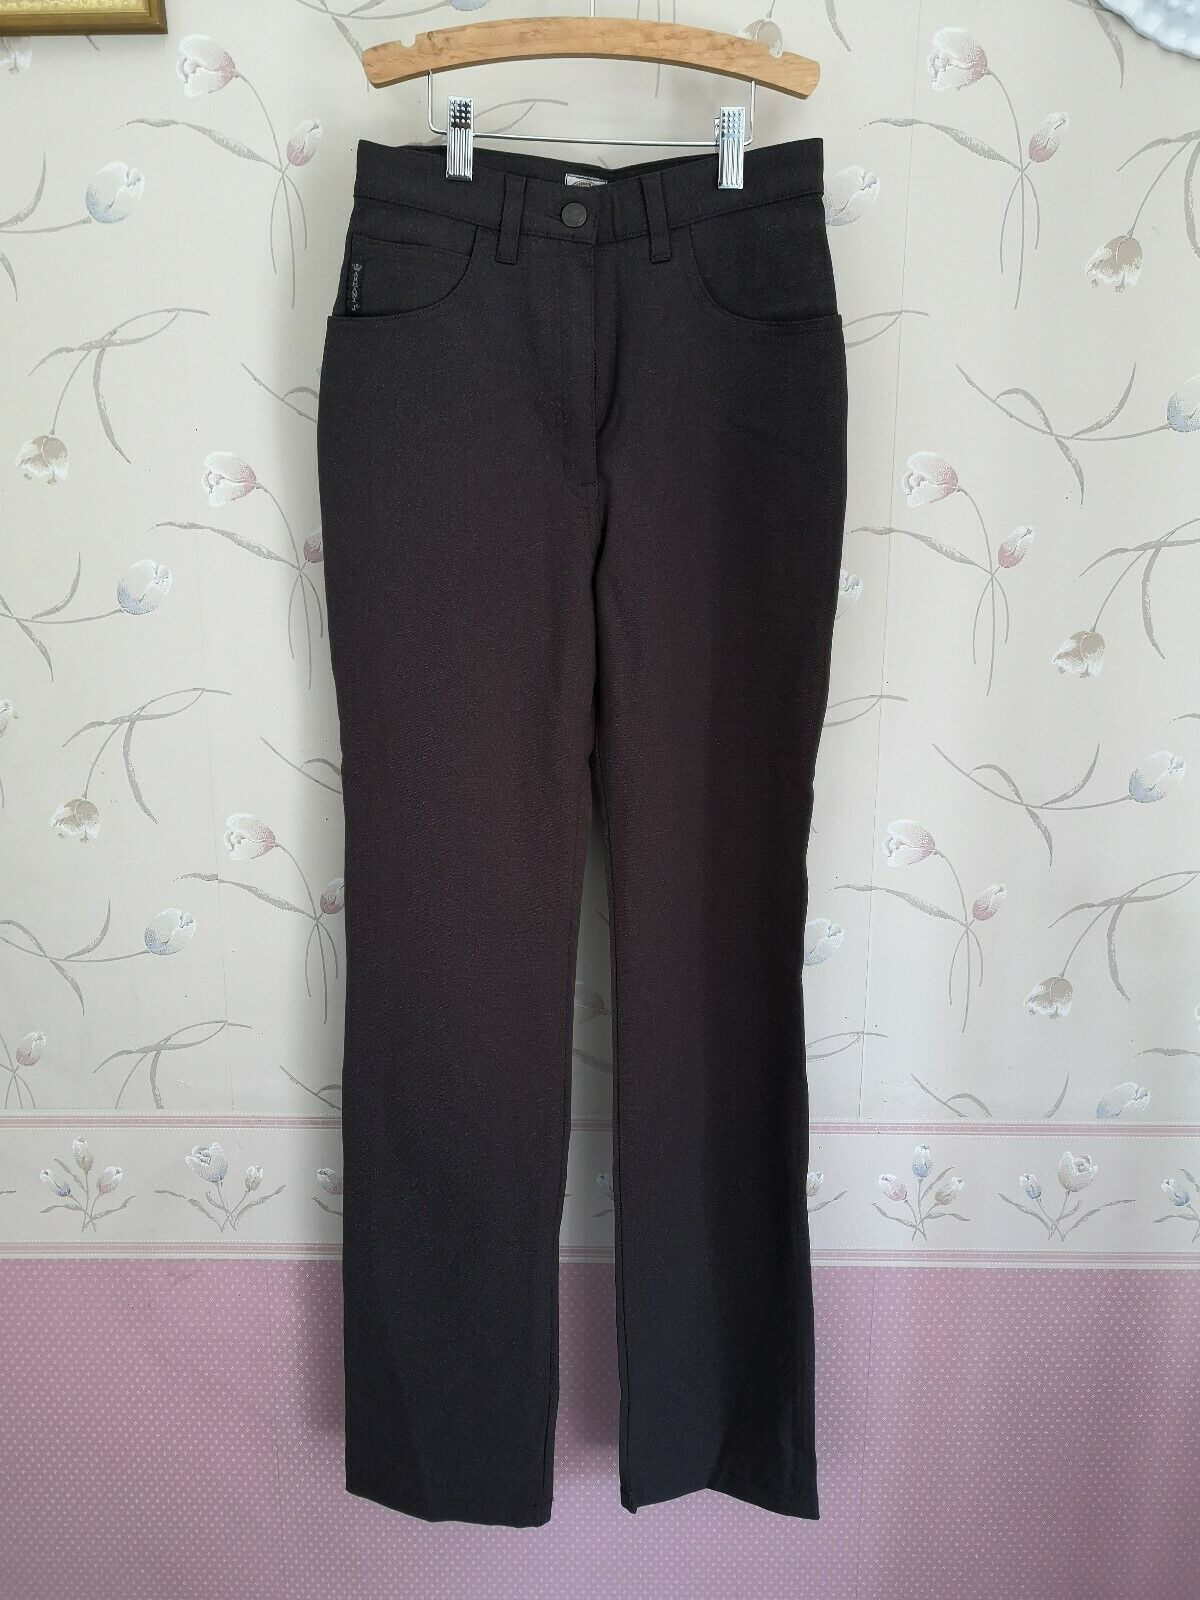 New Authentic Womens Armani Jeans Eco-Wash Brown pants Size 26